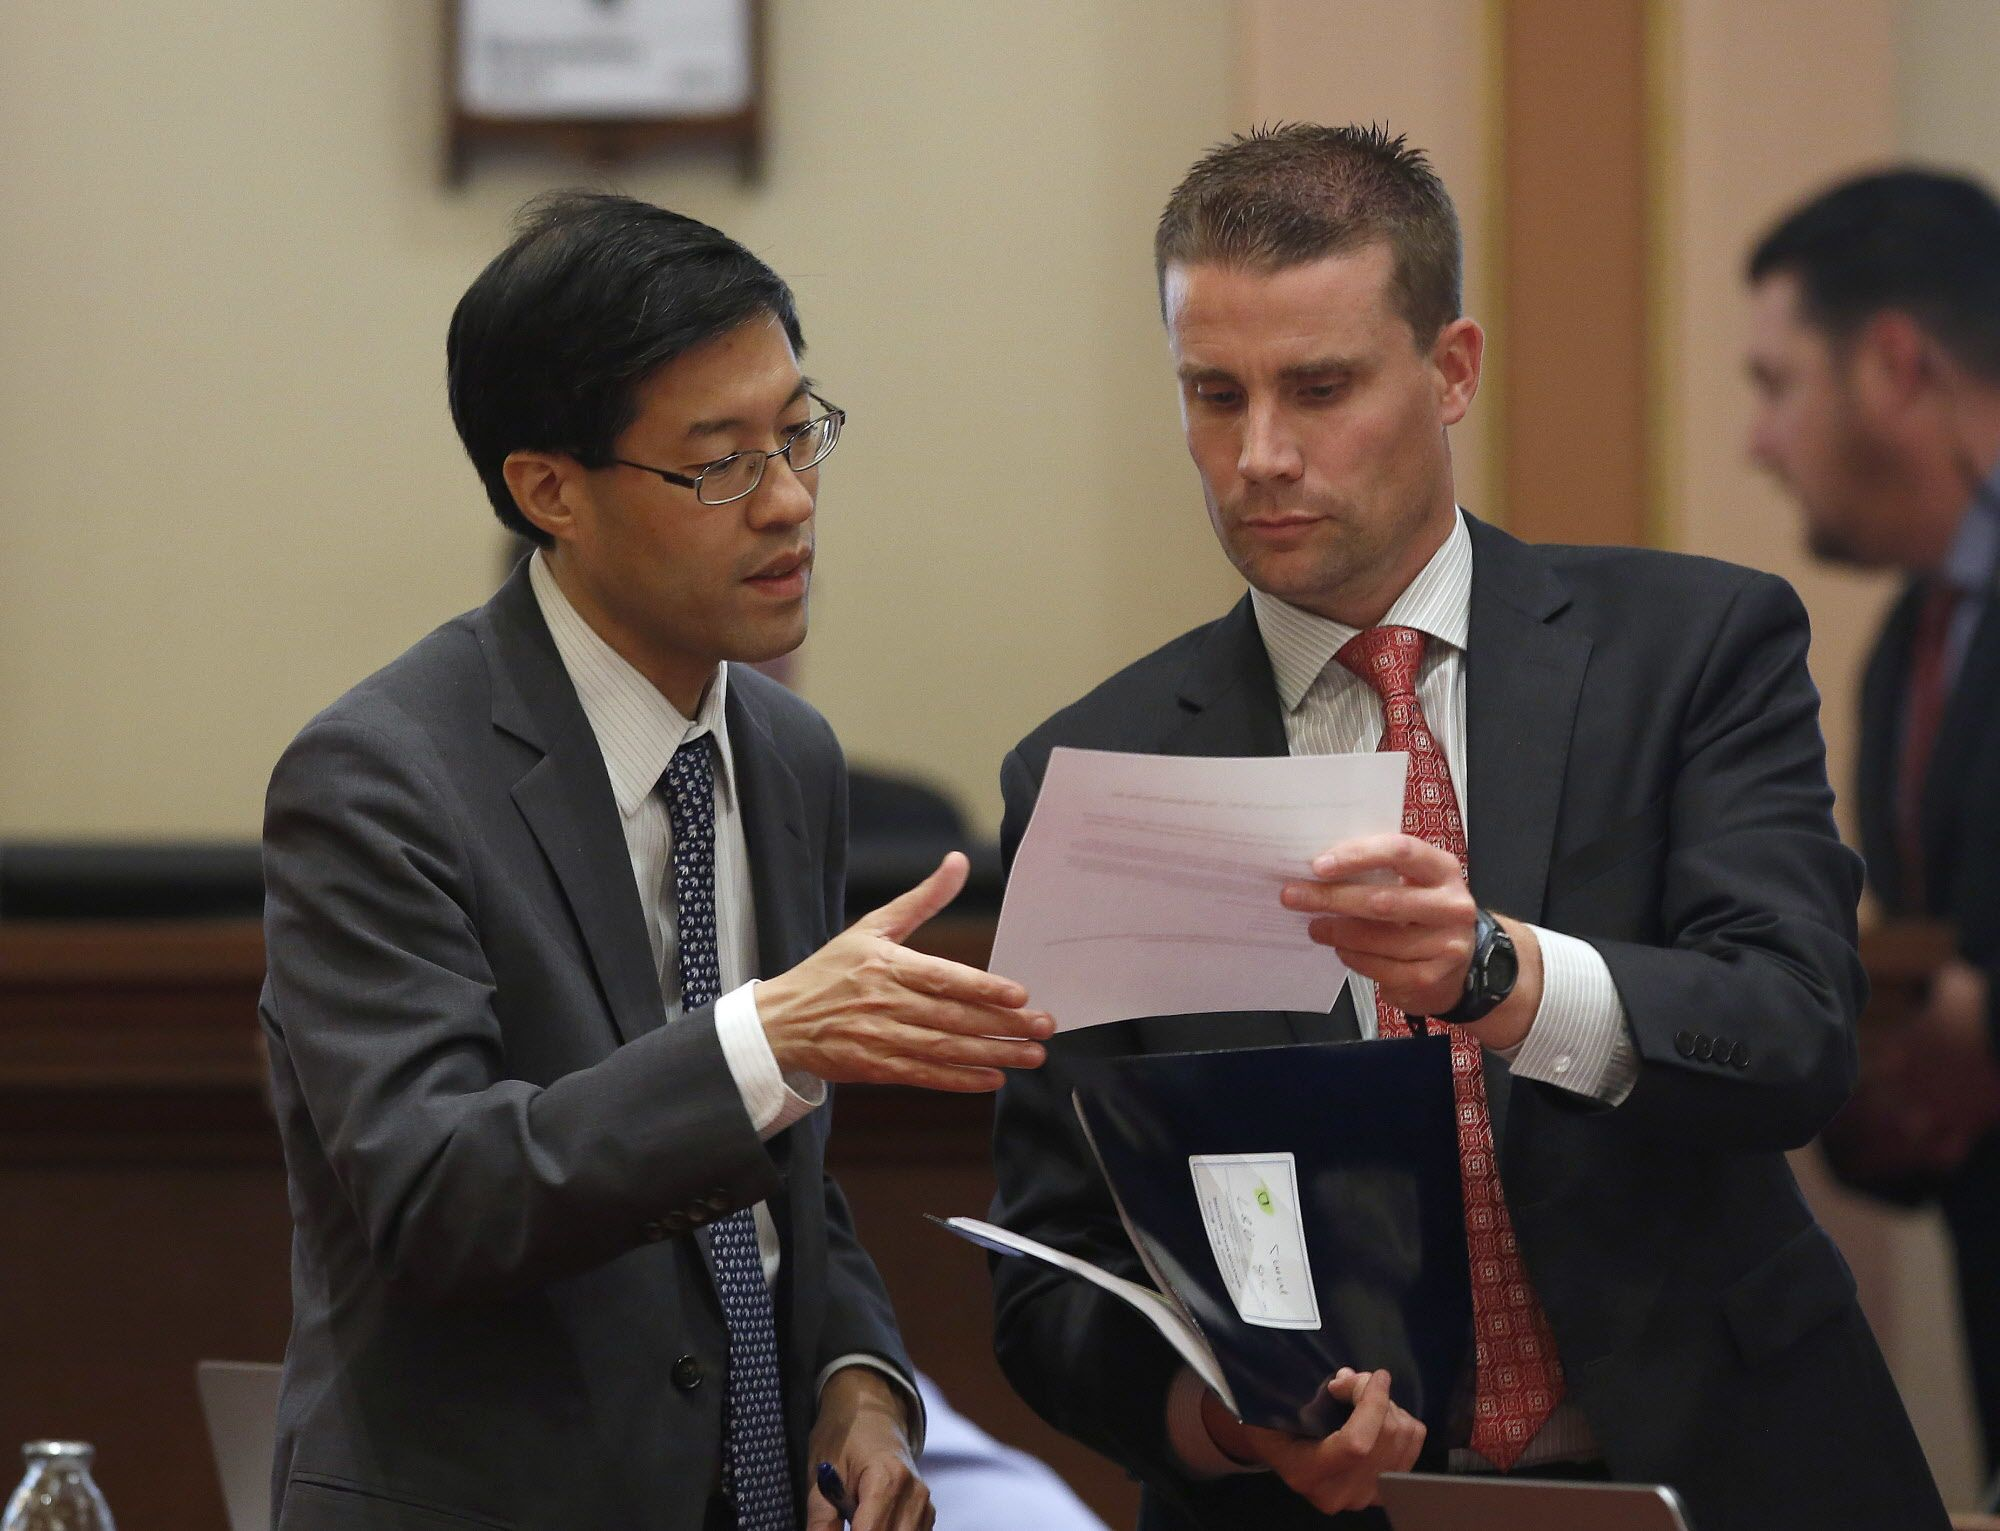 Sen. Mike McGuire, D-Healdsburg, right, discusses his measure to impose a 15 percent sales tax for medical marijuana, with Sen. Richard Pan, D-Sacramento, Wednesday, June 1, 2016, in Sacramento, Calif. Senators approved McGuire's bill, SB987 on a 27-9 vote, sending it to the Assembly. (AP Photo/Rich Pedroncelli)